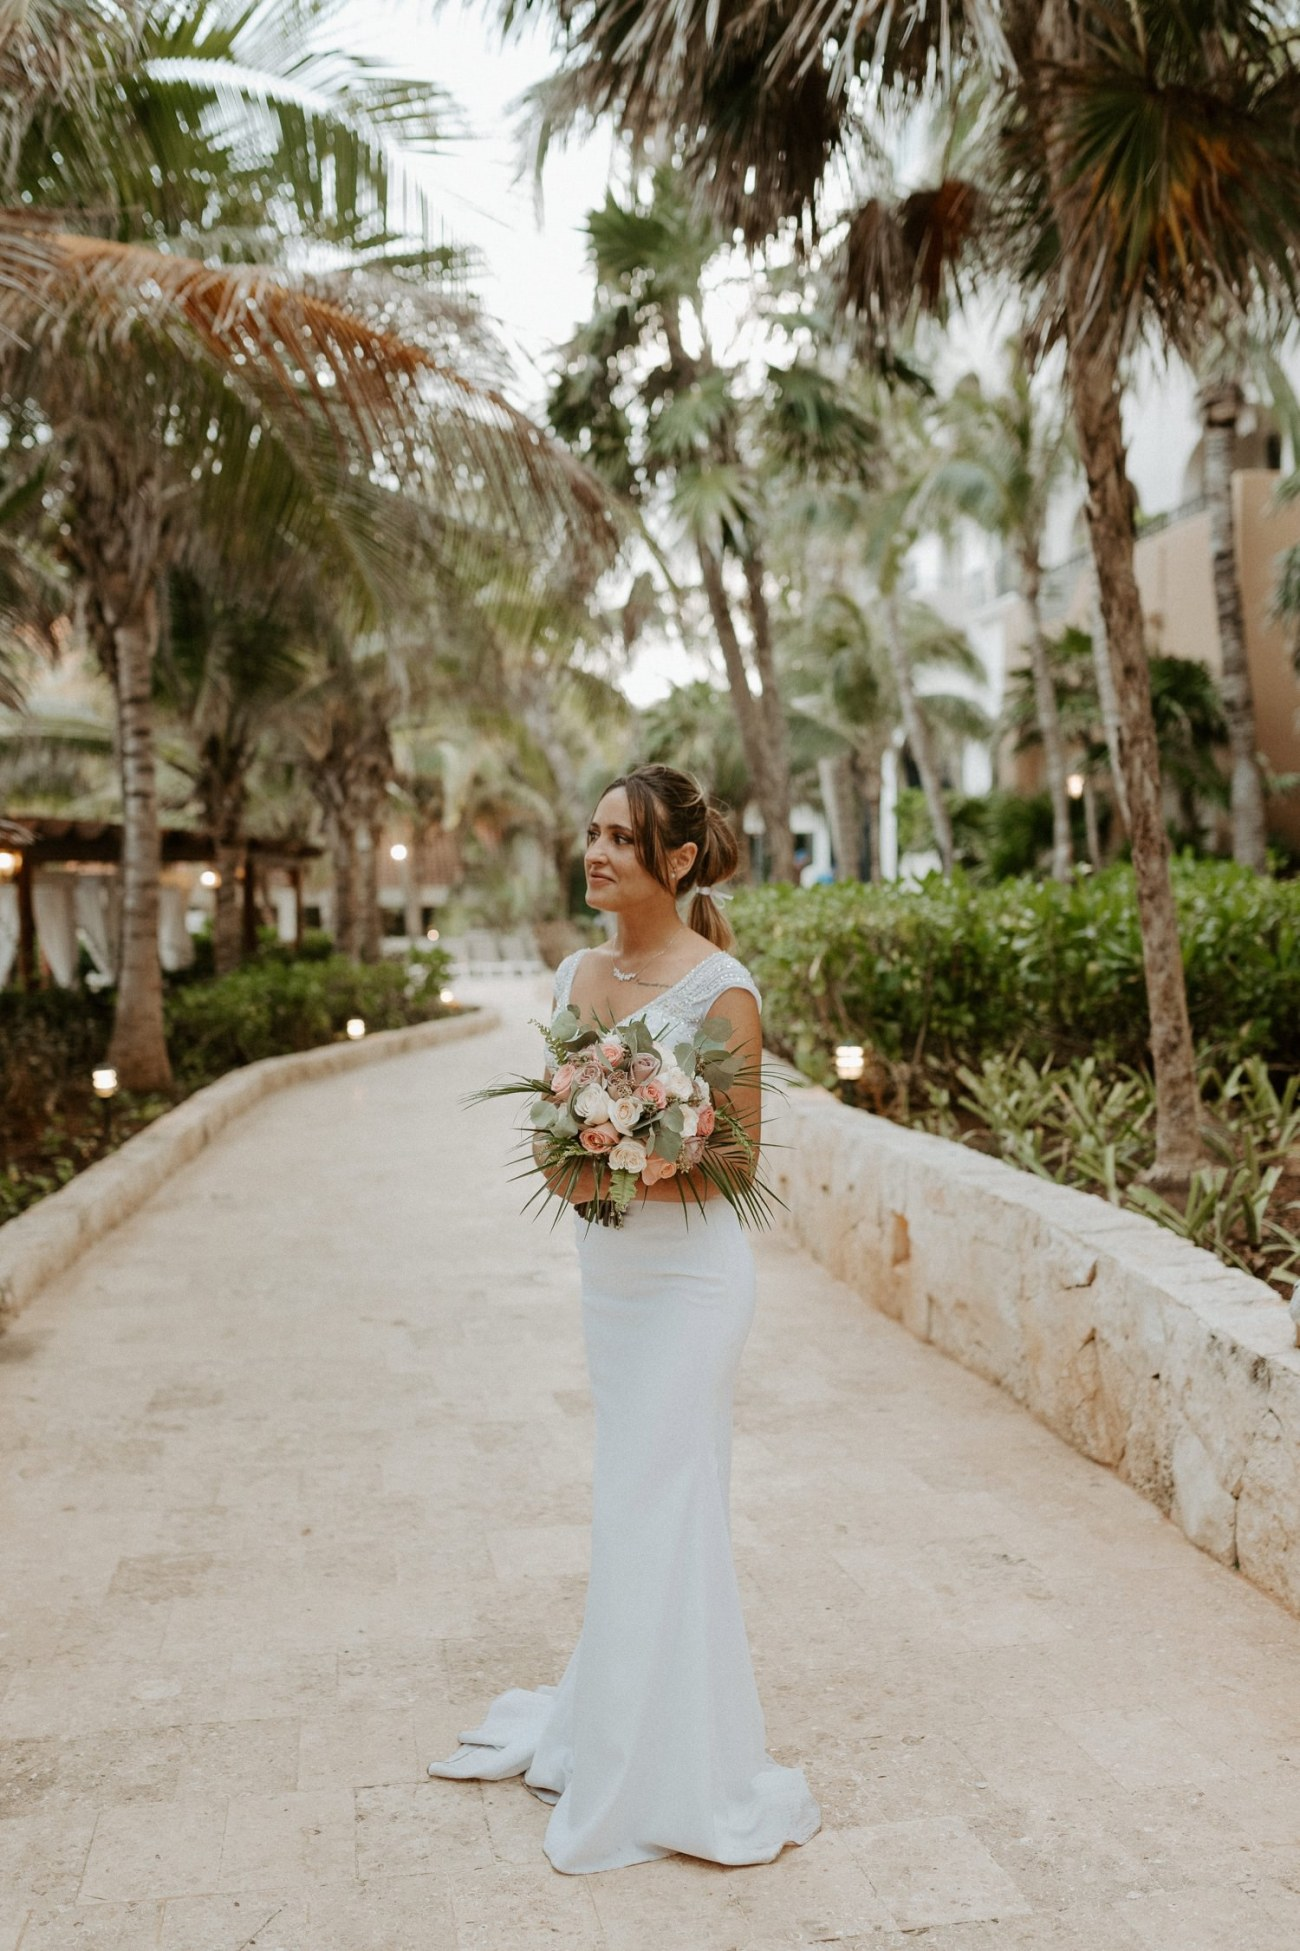 Cancun Destination Wedding Mexico Tulum Wedding Photographer Anais Possamai Photography 058